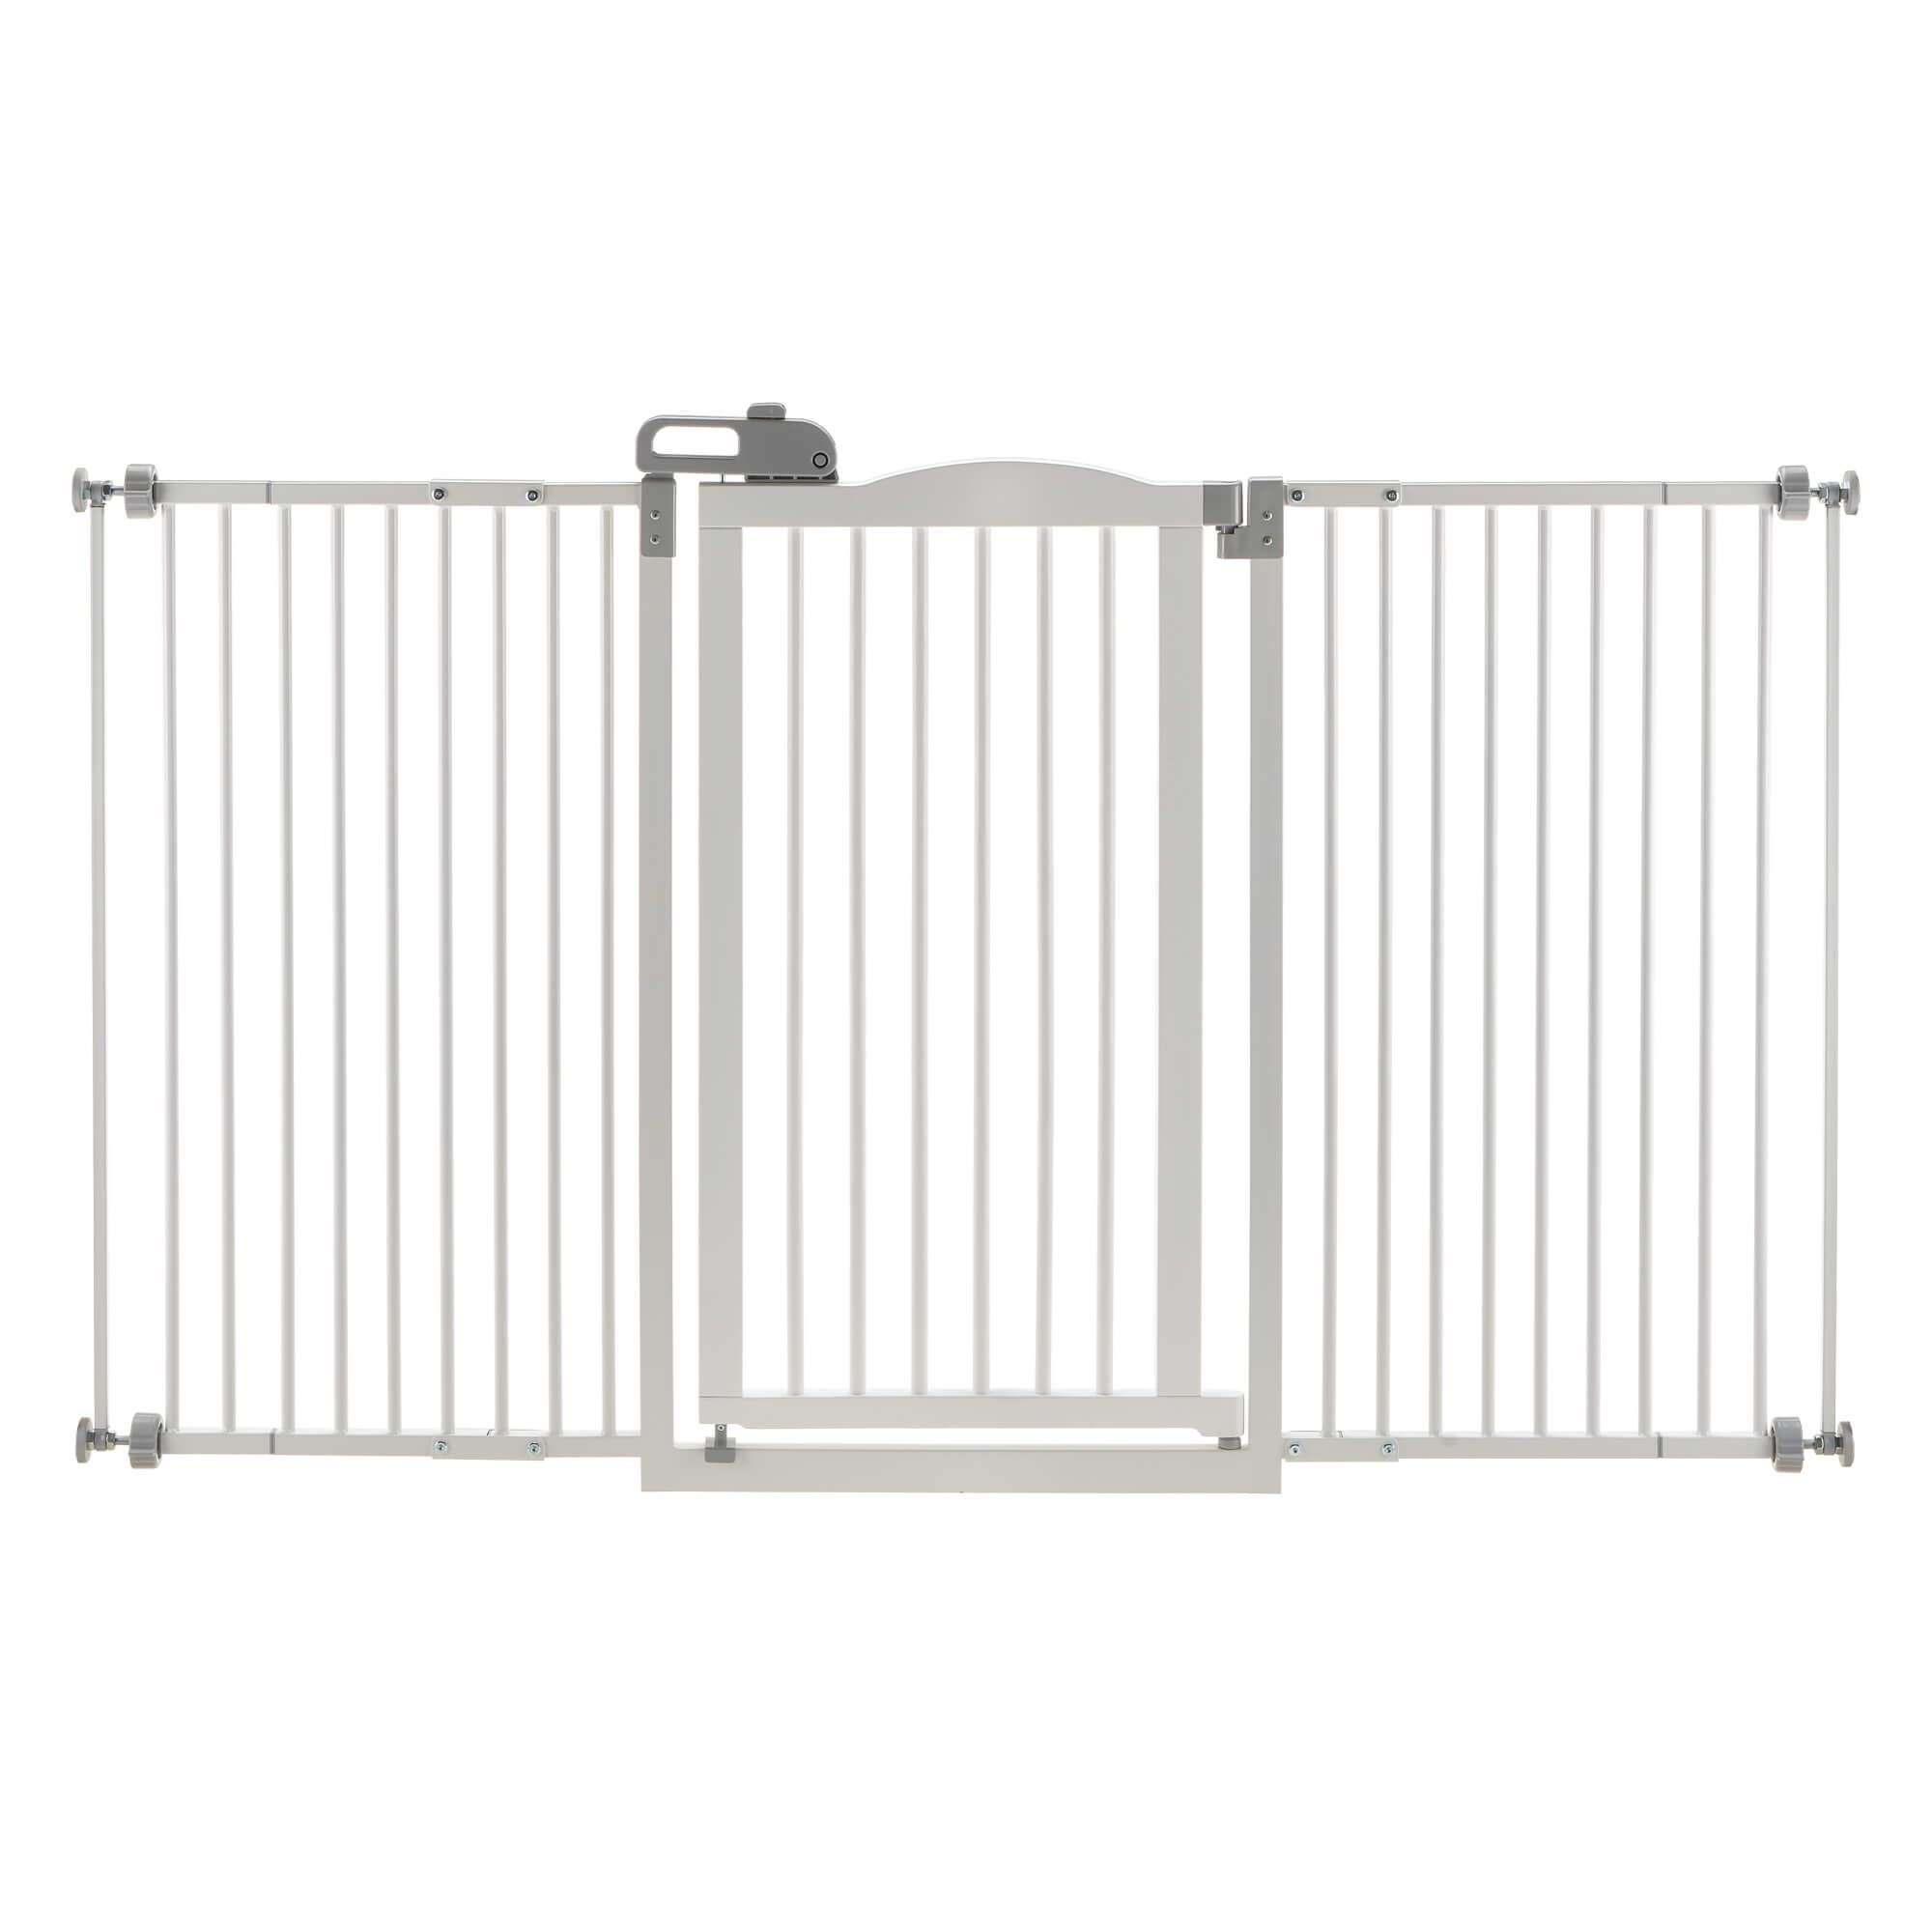 Tall One-Touch Dog Gate II Wide - Origami White